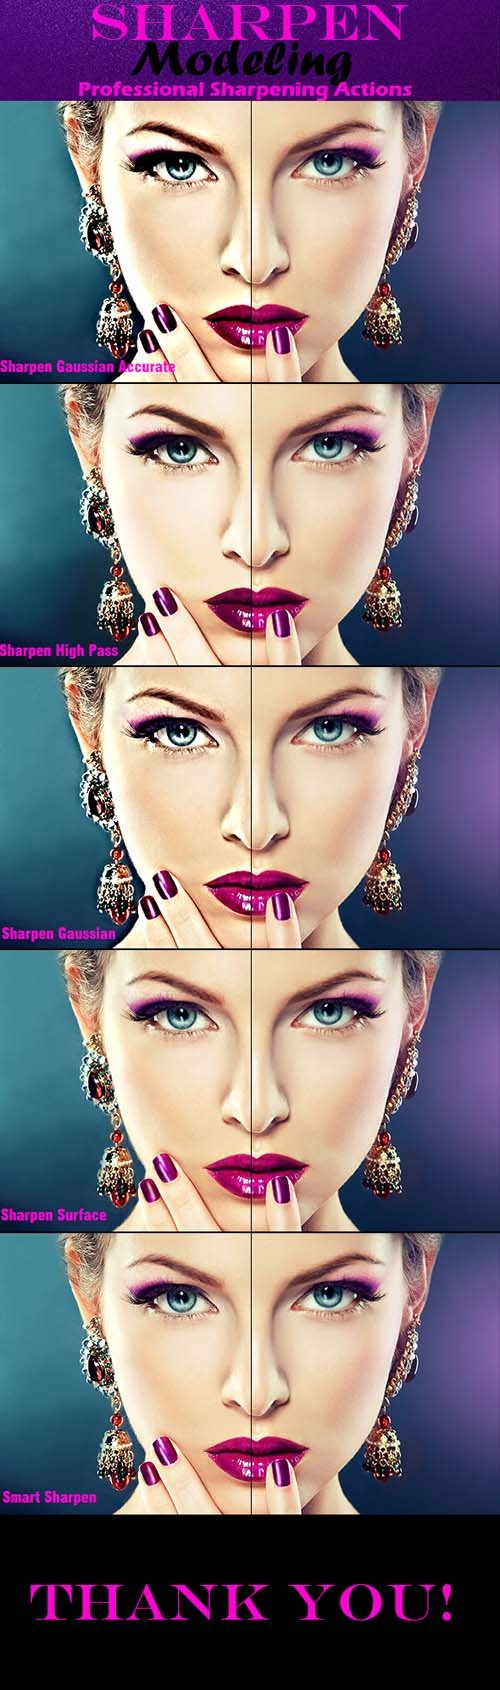 Graphicriver - 5 Sharpen Beauty PS Actions 20224446